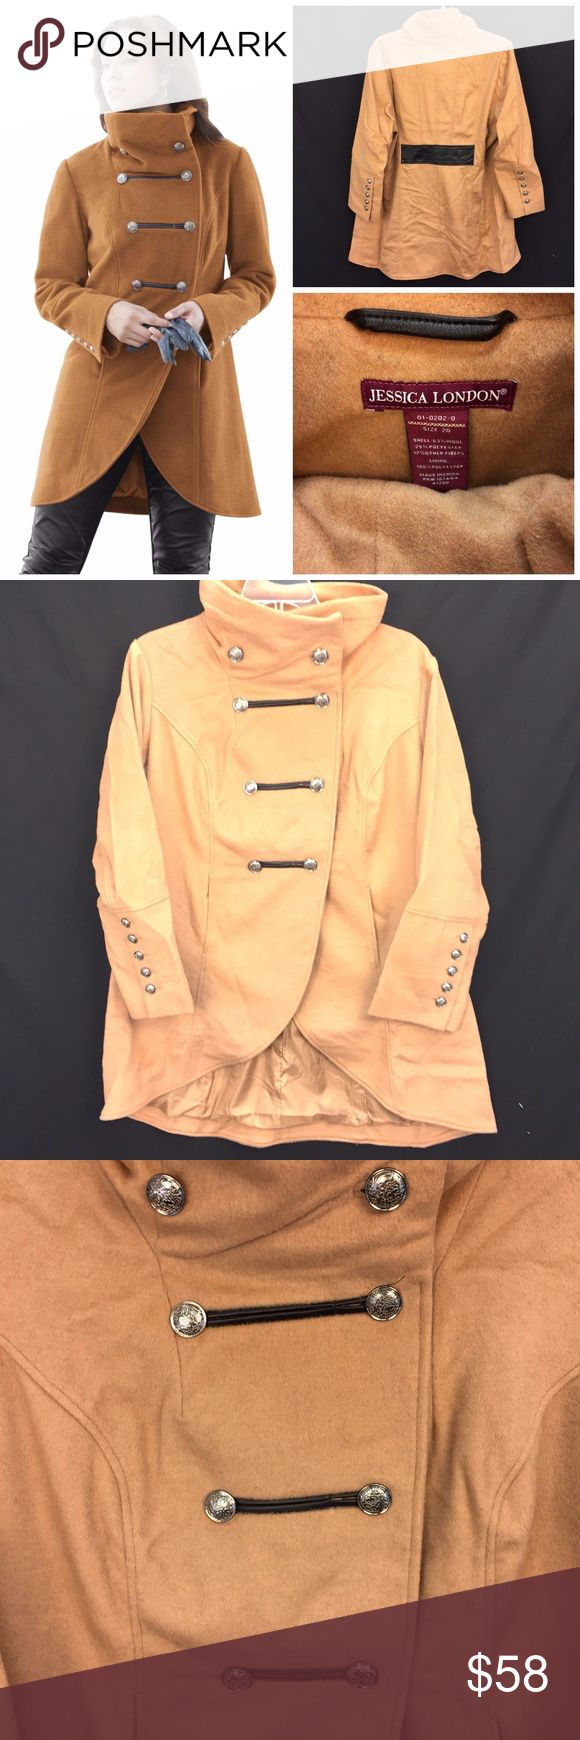 "NWT Jessica London Plus Sz 20 Military Camel Coat New in manufacturer's original packaging camel wool blend coat by Jessica London; plus size 20 * Features funnel neck; military-style buttons; tulip hem in front; hi-low hem; lined; front pockets * Please see below for measurements; all measurements taken with garment lying flat.  Please see all photos for complete condition assessment. Shoulder to Shoulder: 19.5"" Armpit to Armpit (Bust): 27"" Waist: 25"" Overall Length: 35"" Sleeve: 25"" Item…"